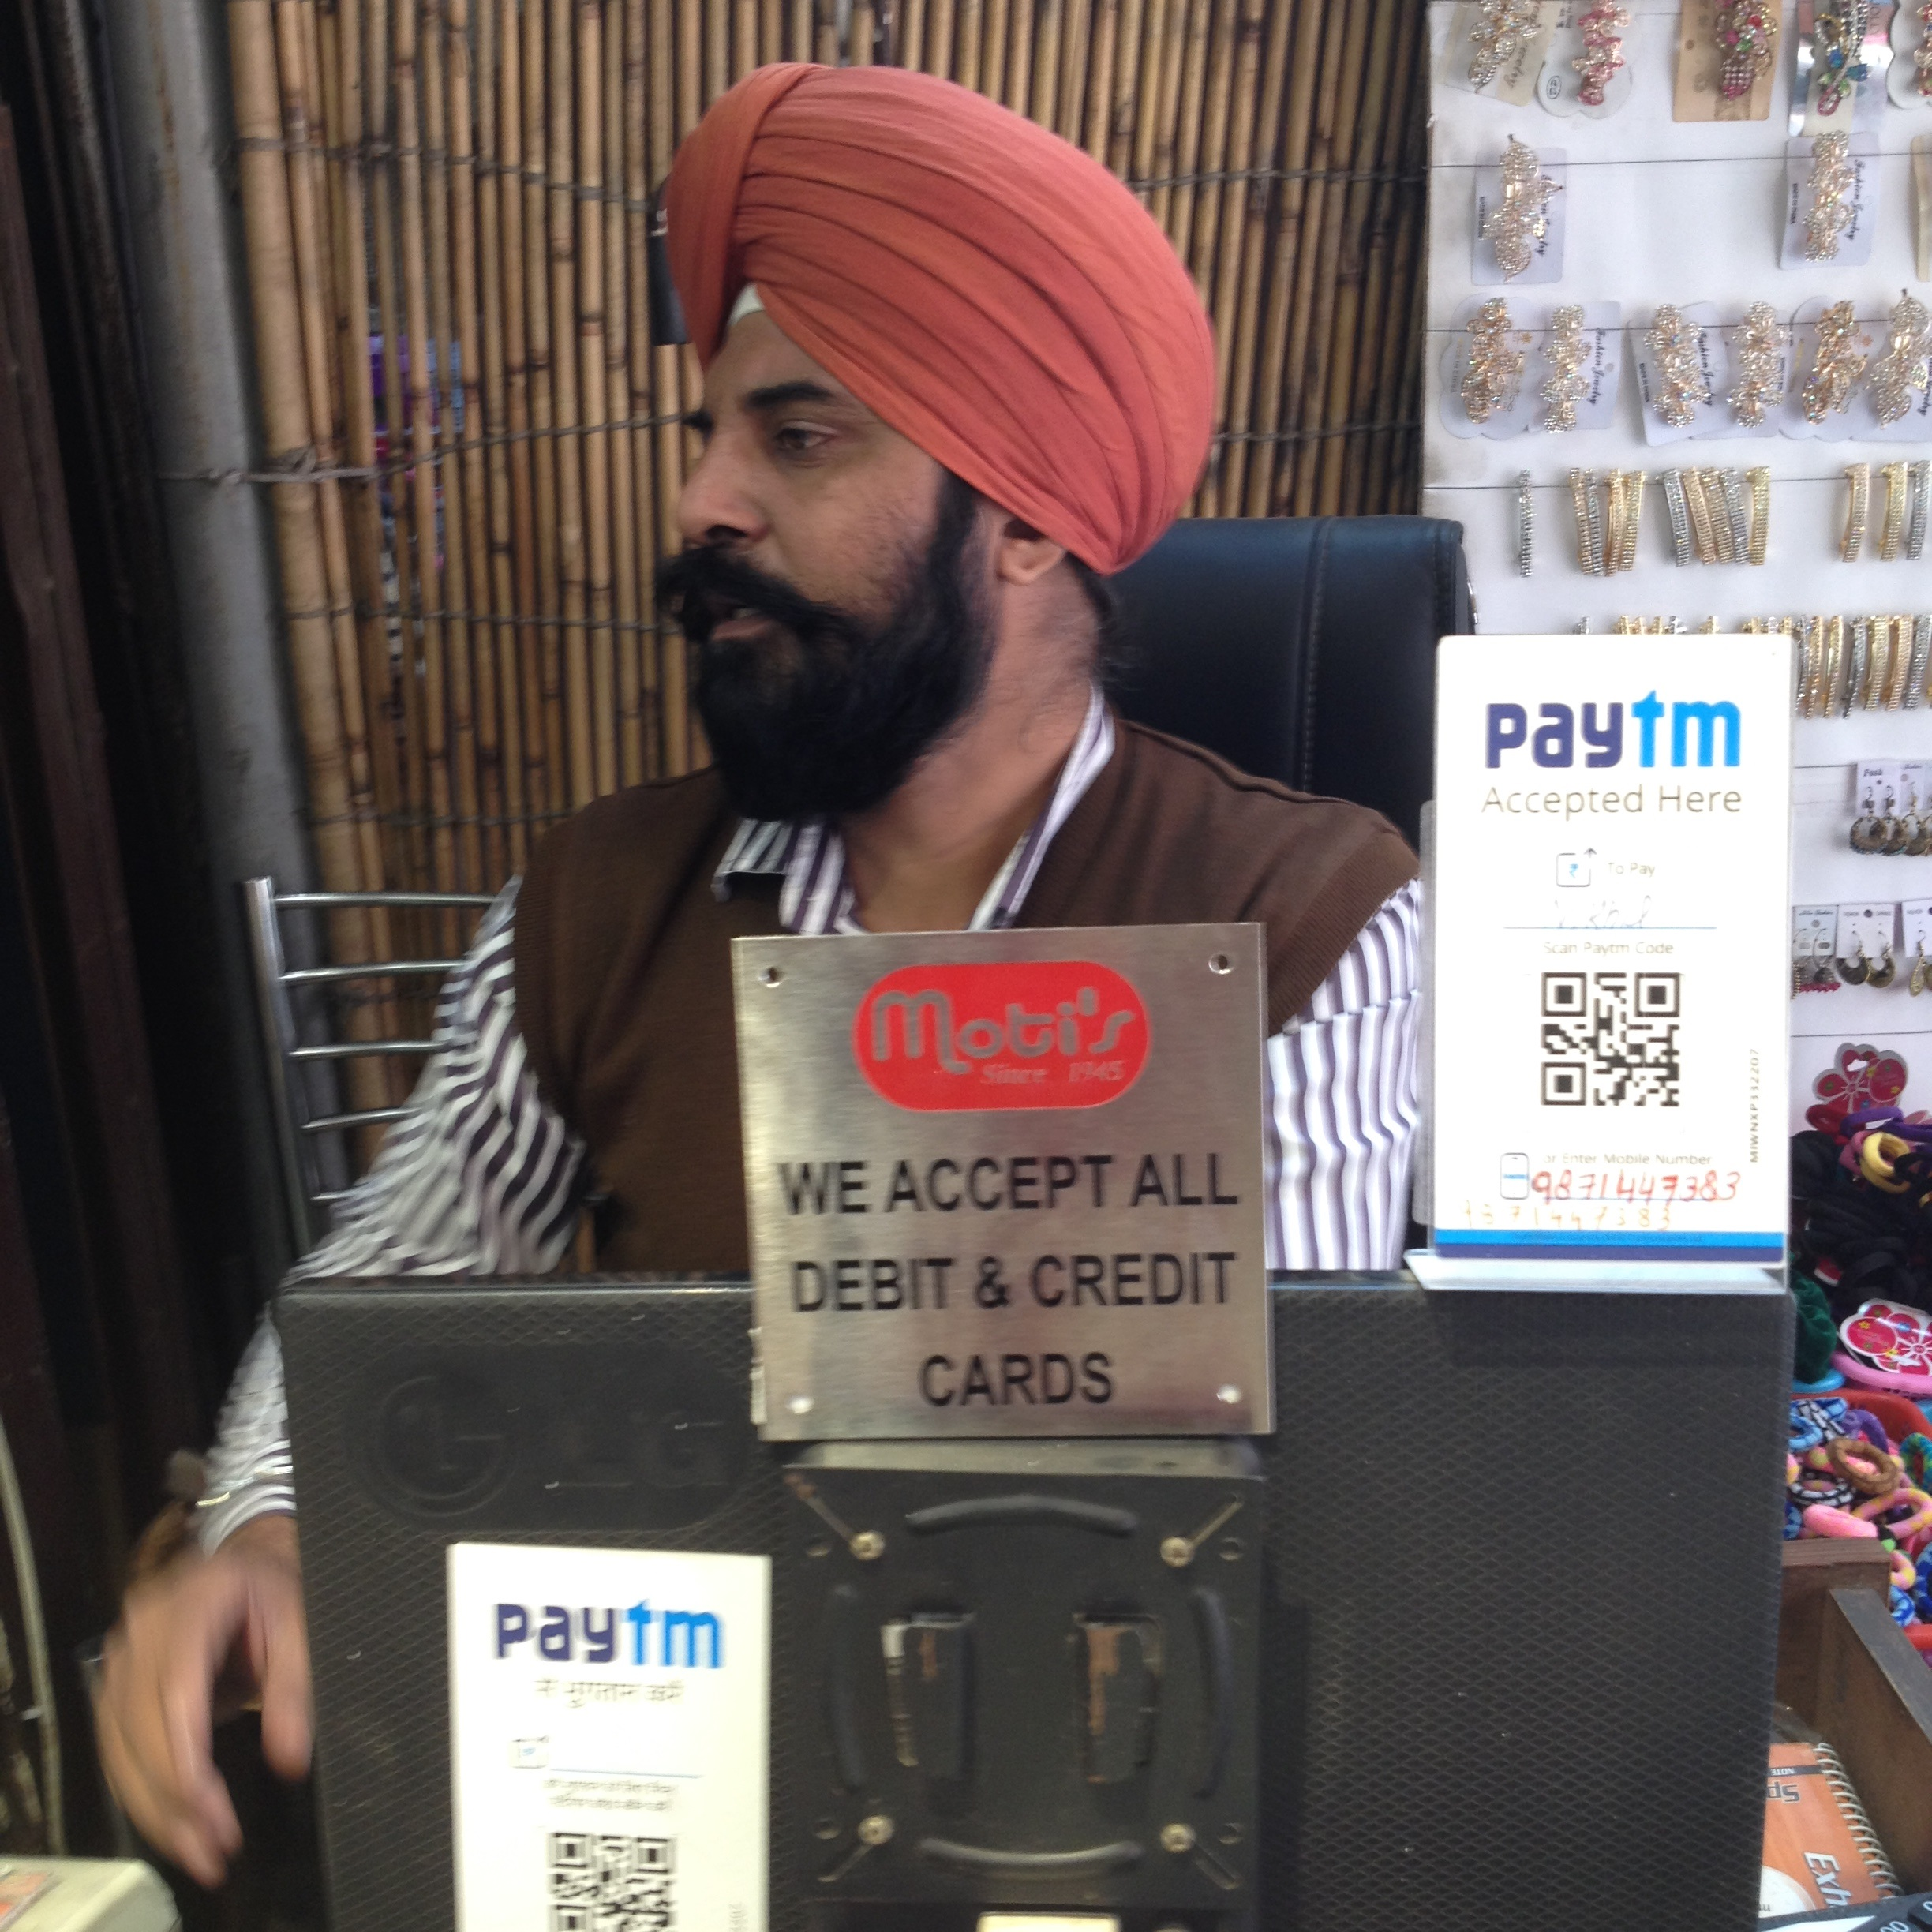 Massive cash shortages prompted shop owner Satnam Singh in New Delhi to give people the option to pay via mobile wallets. (A. Pasricha/VOA)